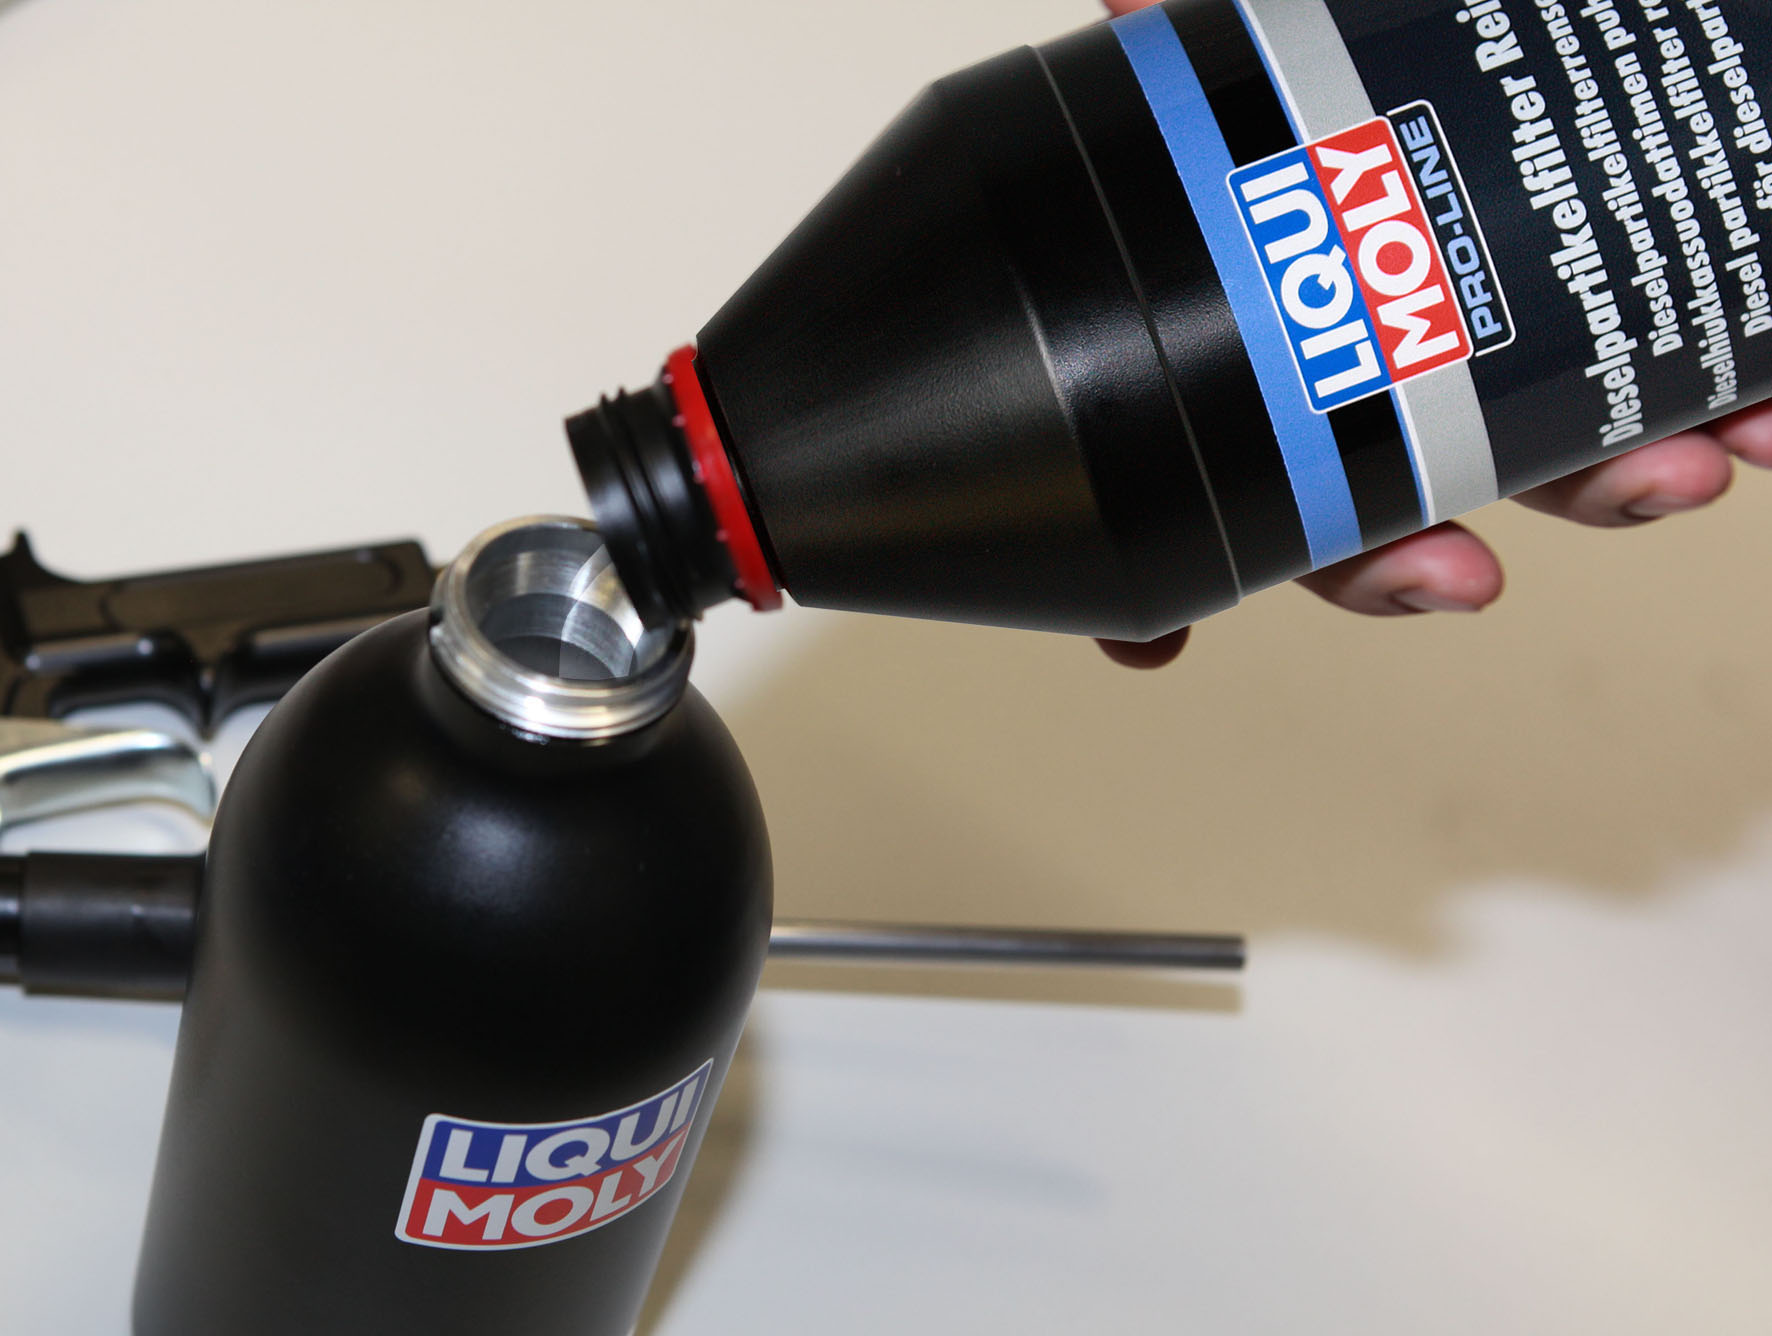 liqui moly belgi motoroli n additieven auto onderhoud servicepaket van liqui moly voor. Black Bedroom Furniture Sets. Home Design Ideas